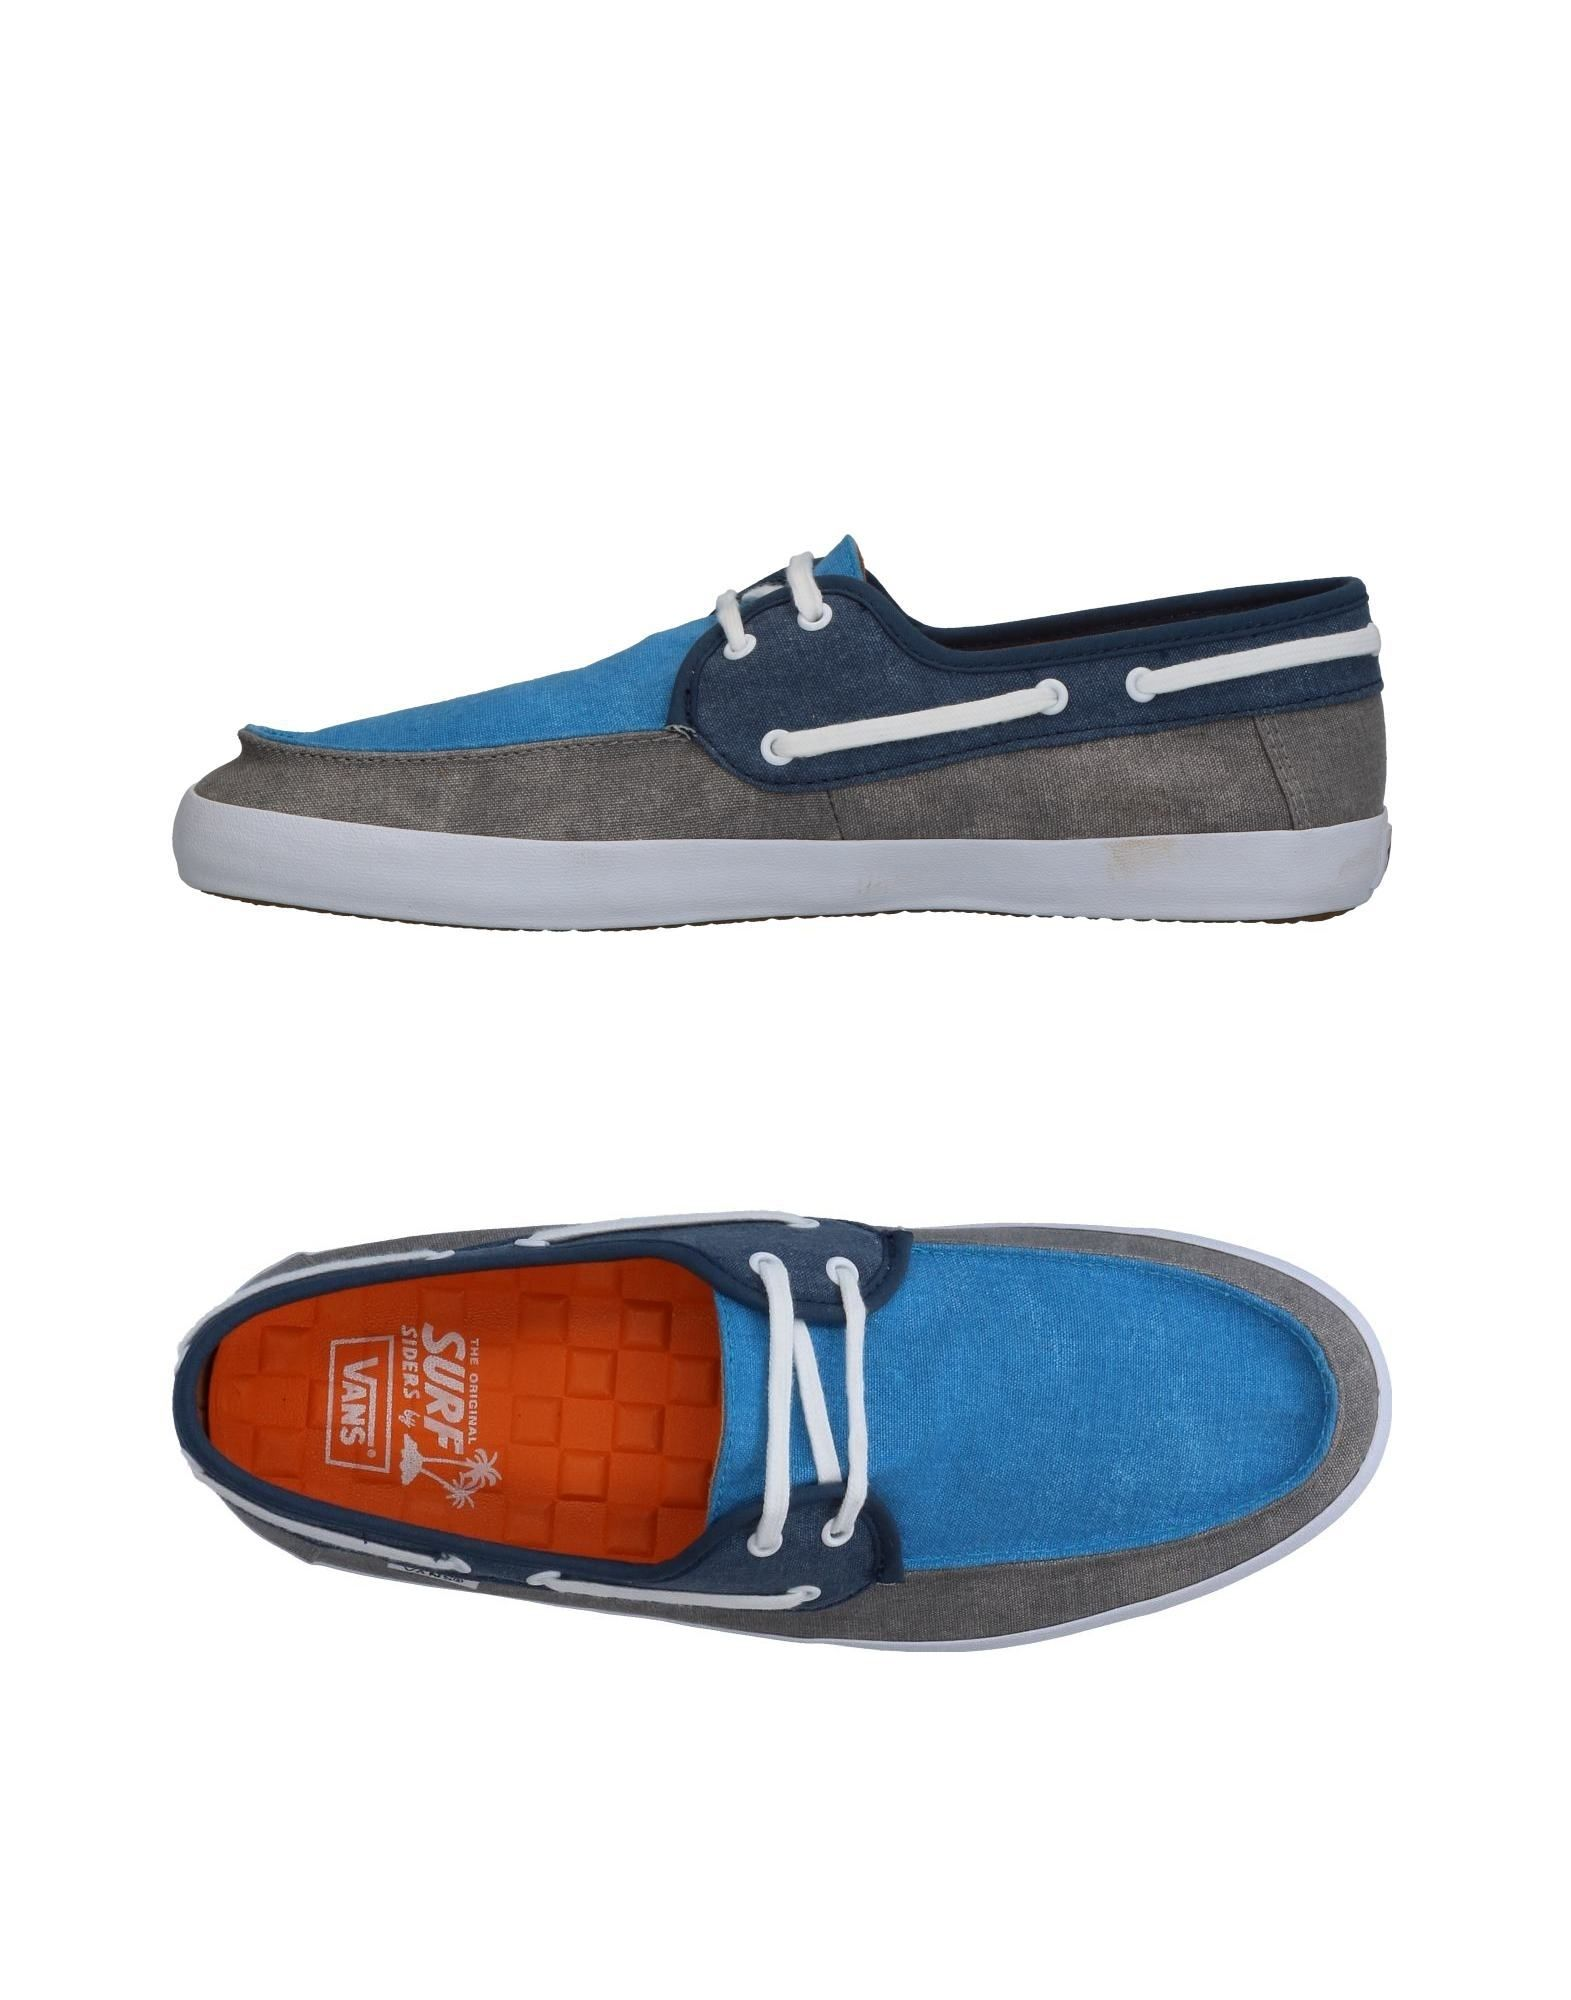 THE ORIGINAL SURF SIDERS by VANS Мокасины